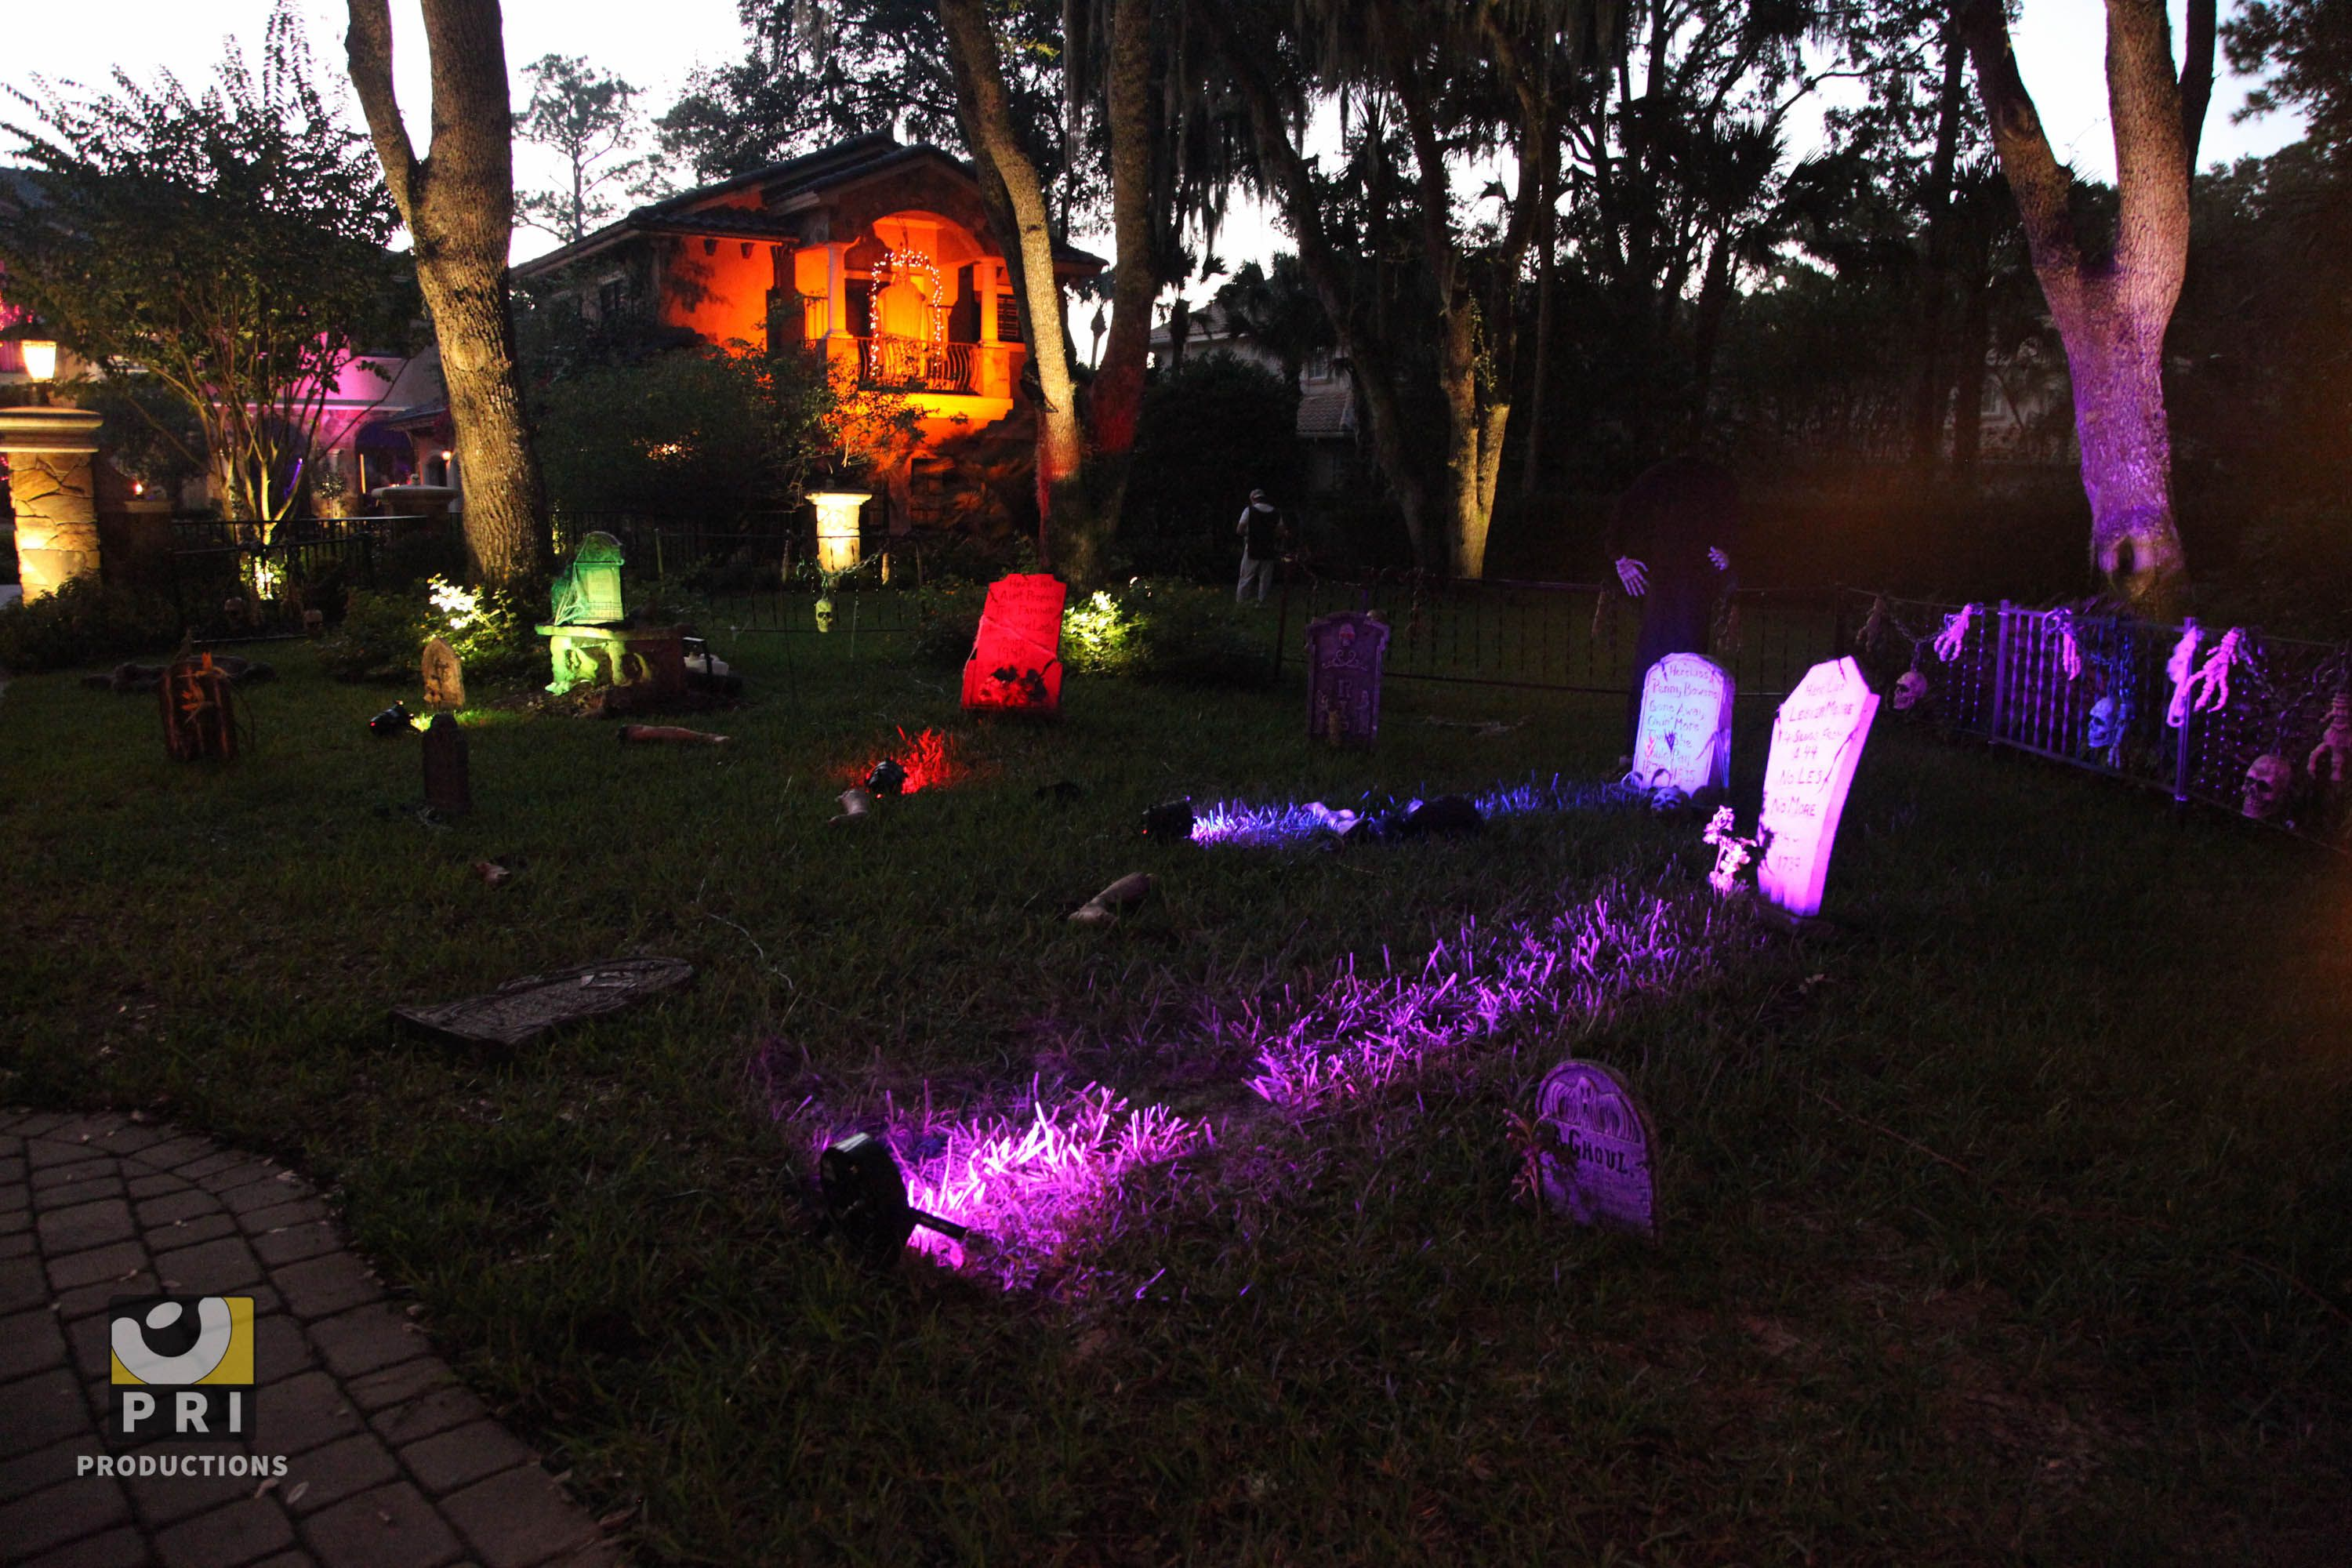 Halloween yard decorations - Tombstone props and dramatic lighting. & Halloween yard decorations - Tombstone props and dramatic lighting ... azcodes.com